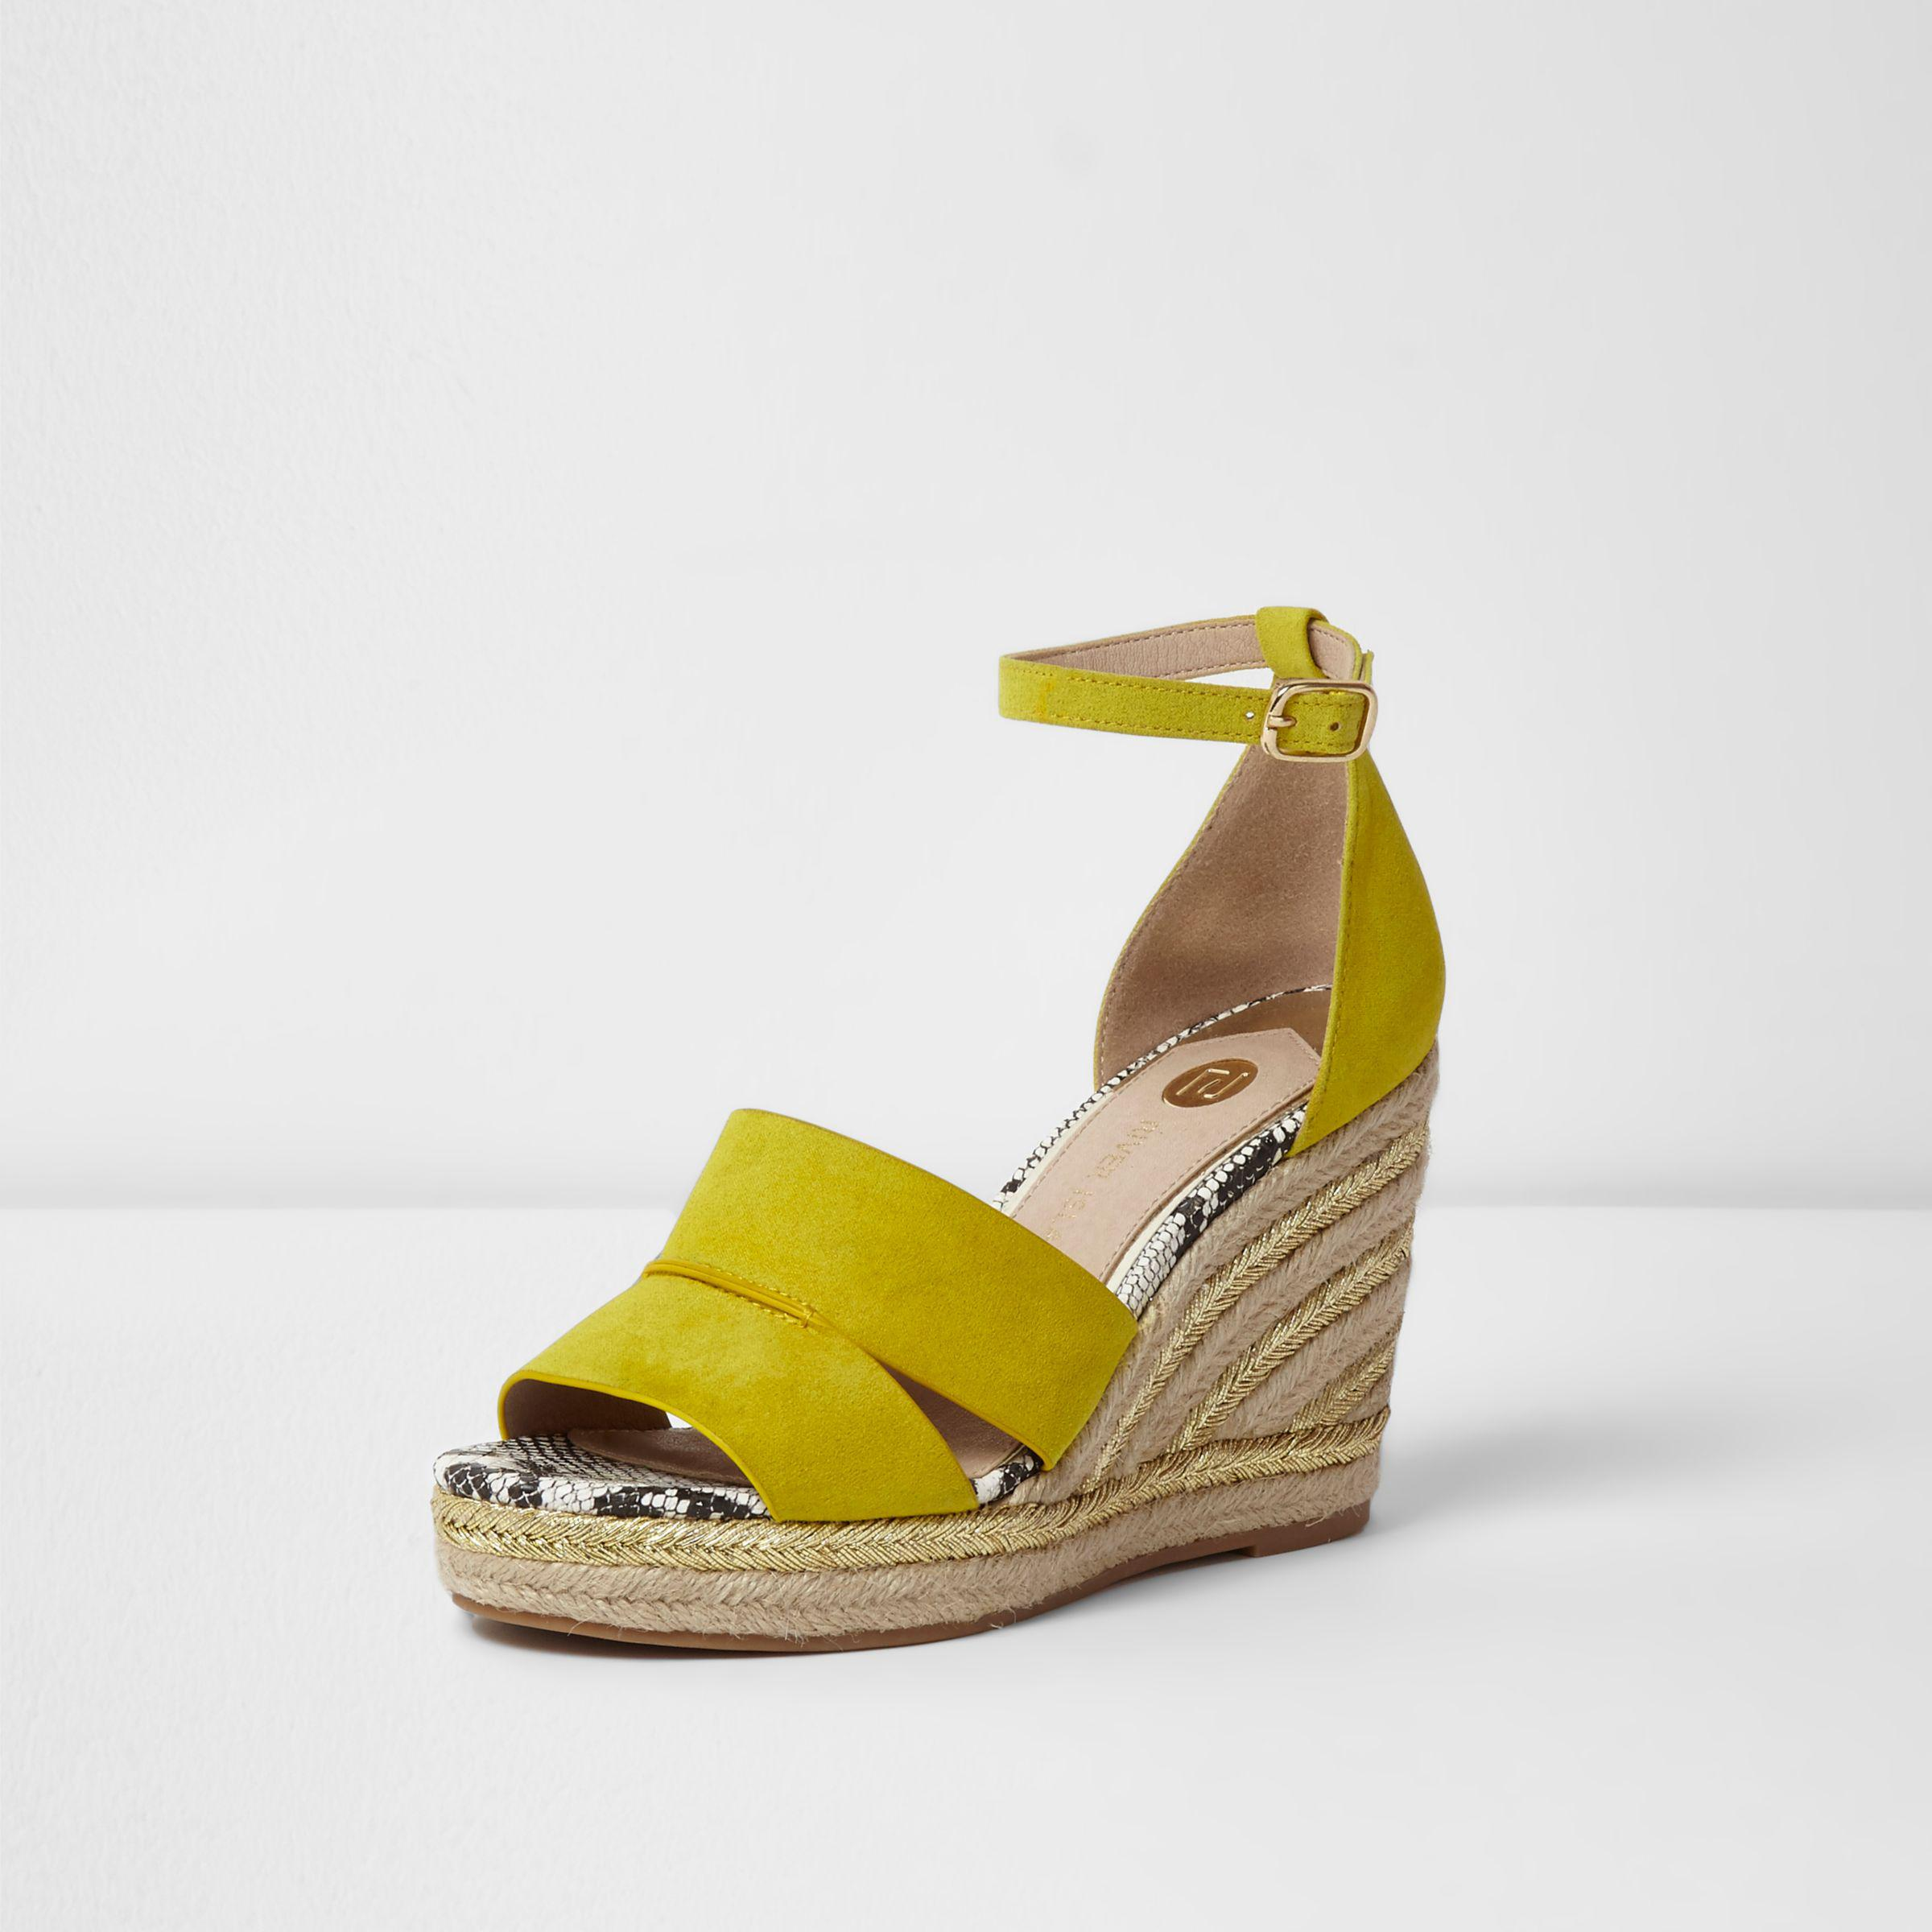 f75ec643d0 River Island Yellow Strappy Espadrille Wedges in Yellow - Lyst